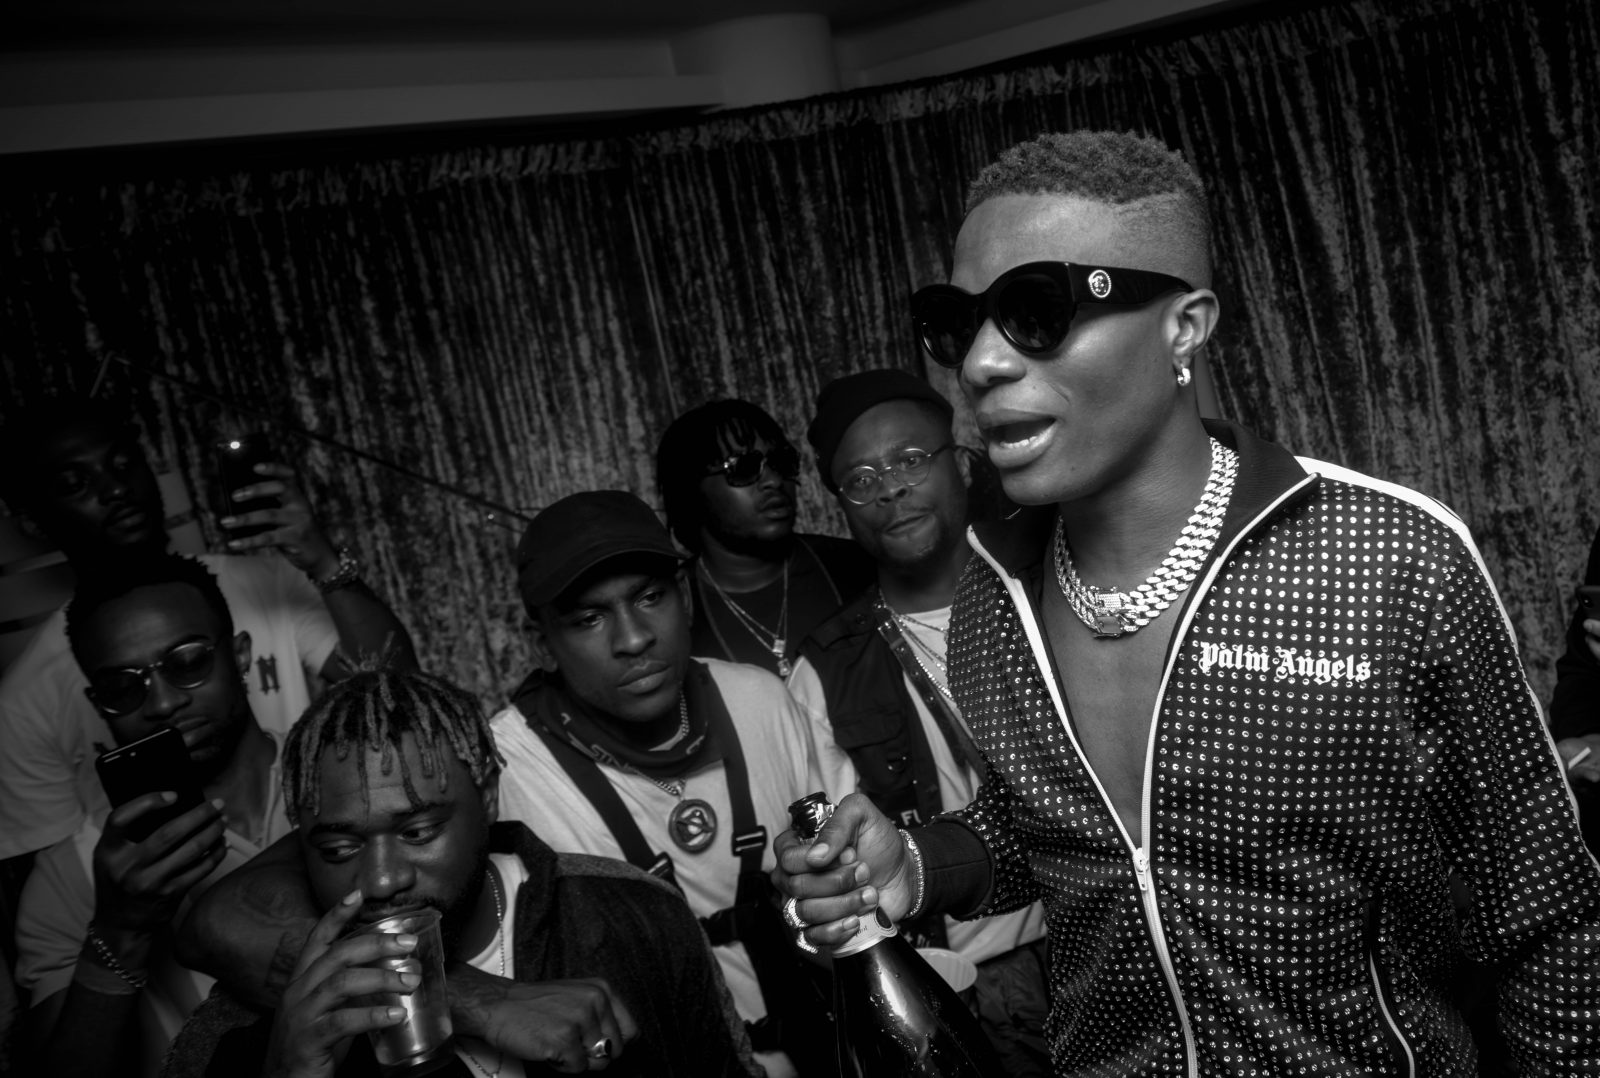 o2 Arena, London, United Kingdom. 26th May 2018. Wizkid in his dressing with Skepta and others after his performances on stage during AFROREPUBLIK festival at The O2 Arena. Michael Tubi / Alamy Live News